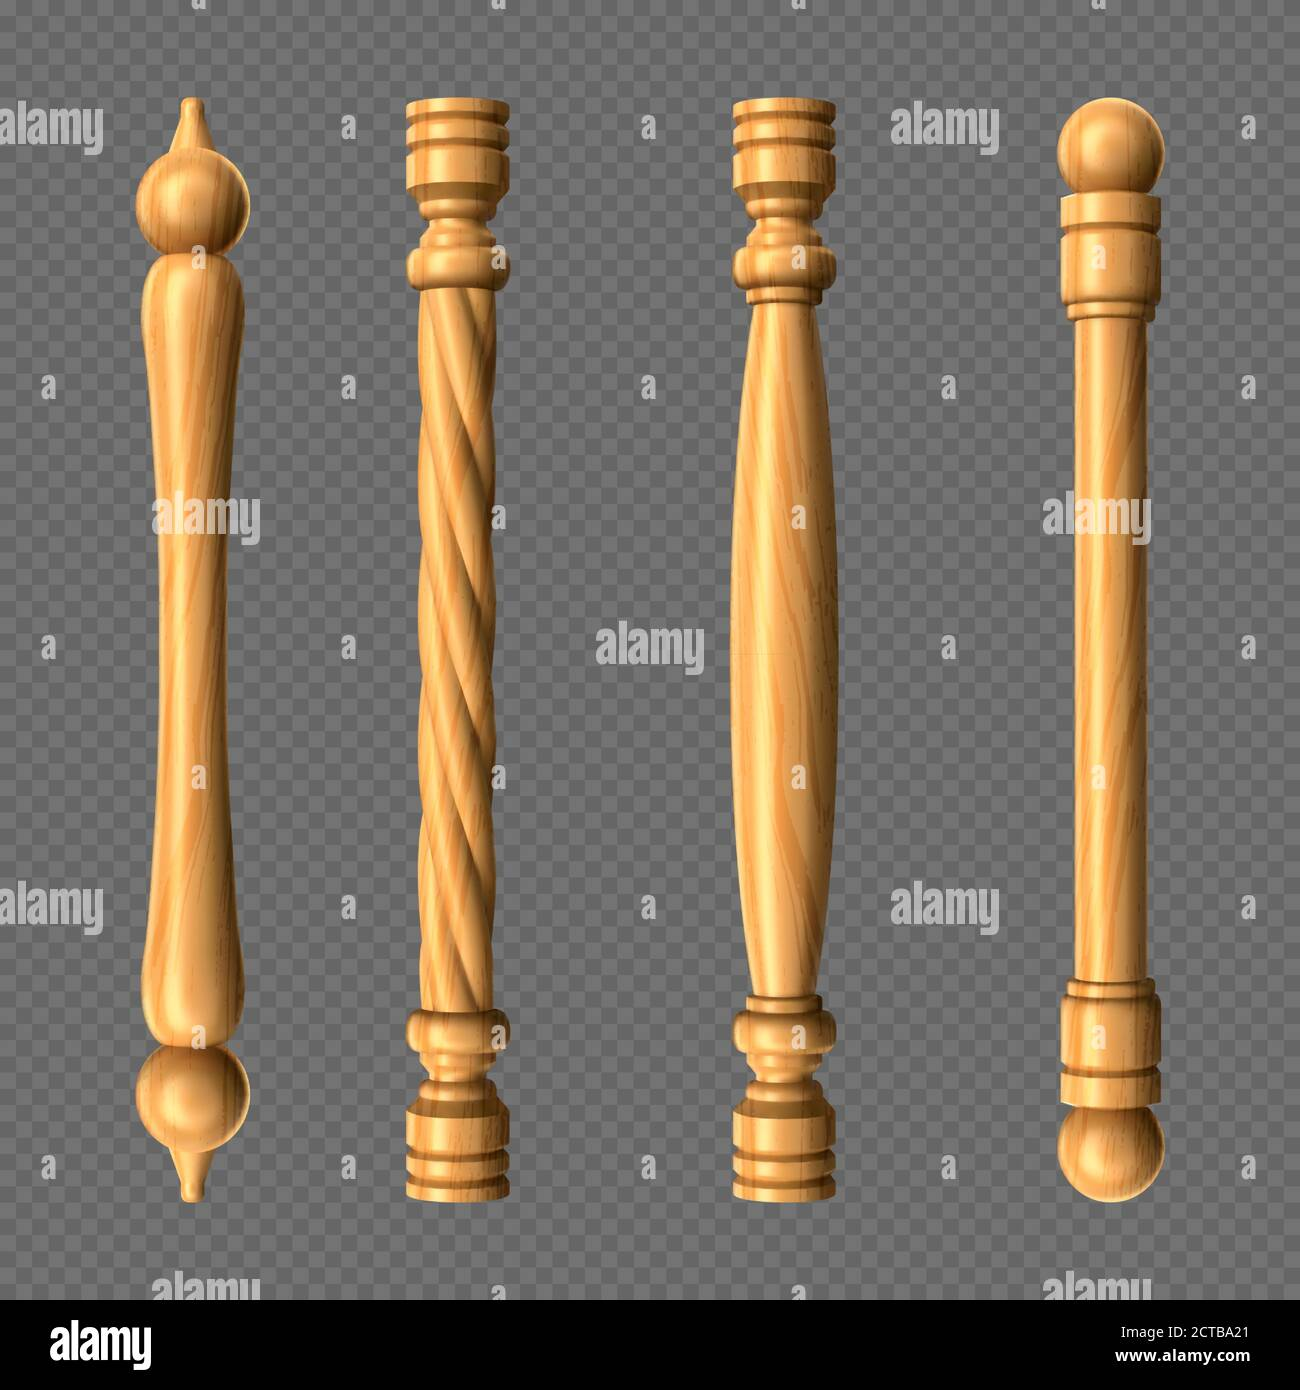 Wooden Door Handles Column And Twisted Knobs Bar Shapes Isolated On Transparent Background Yellow Wood Doorknobs